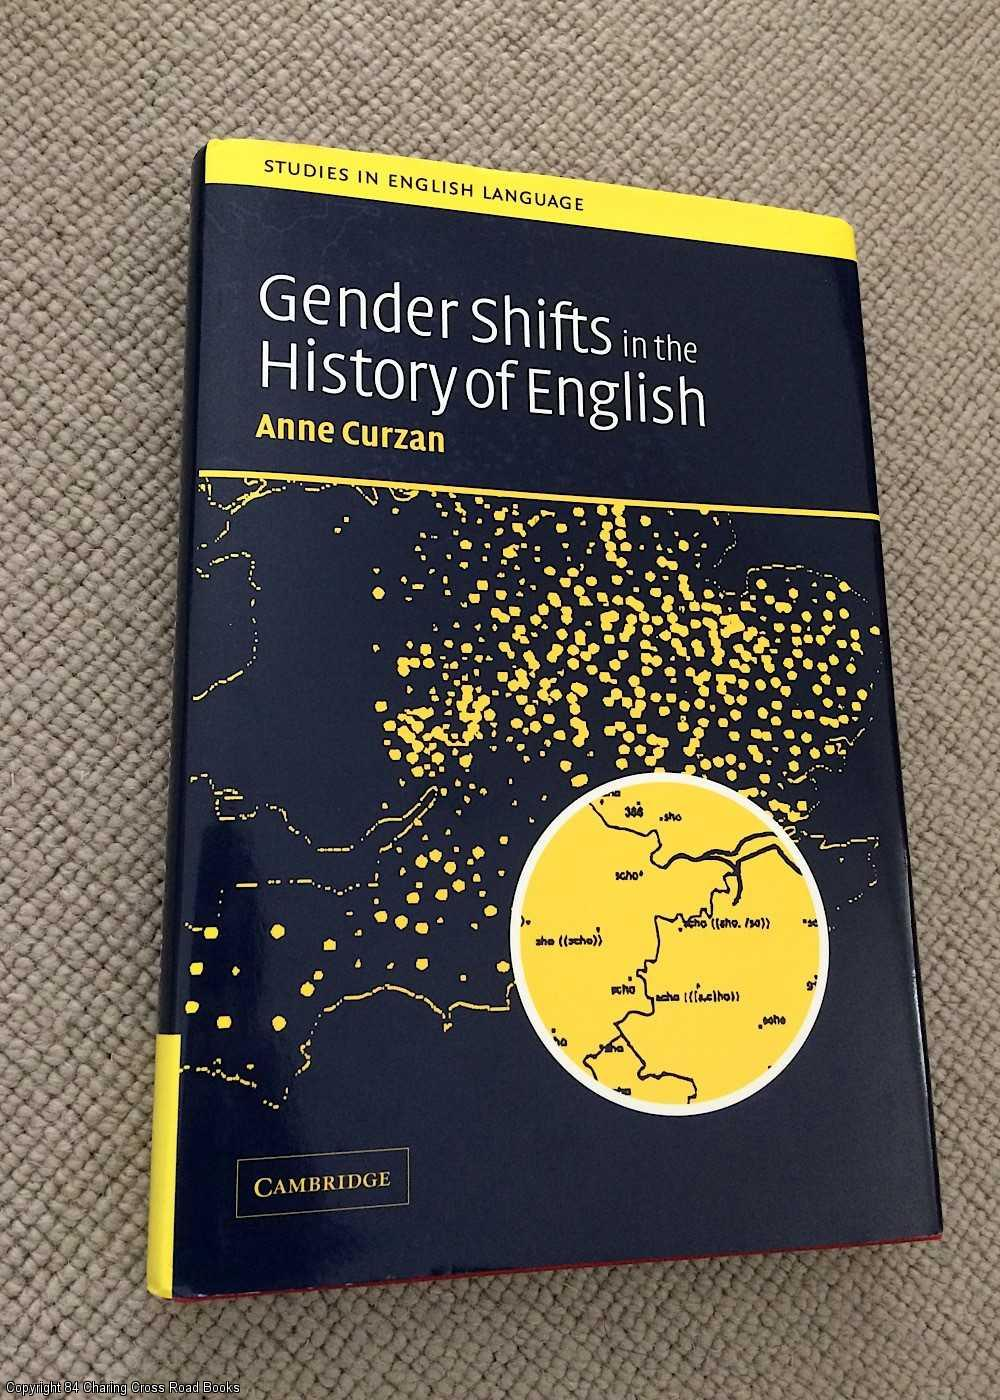 CURZAN, ANNE - Gender Shifts in the History of English